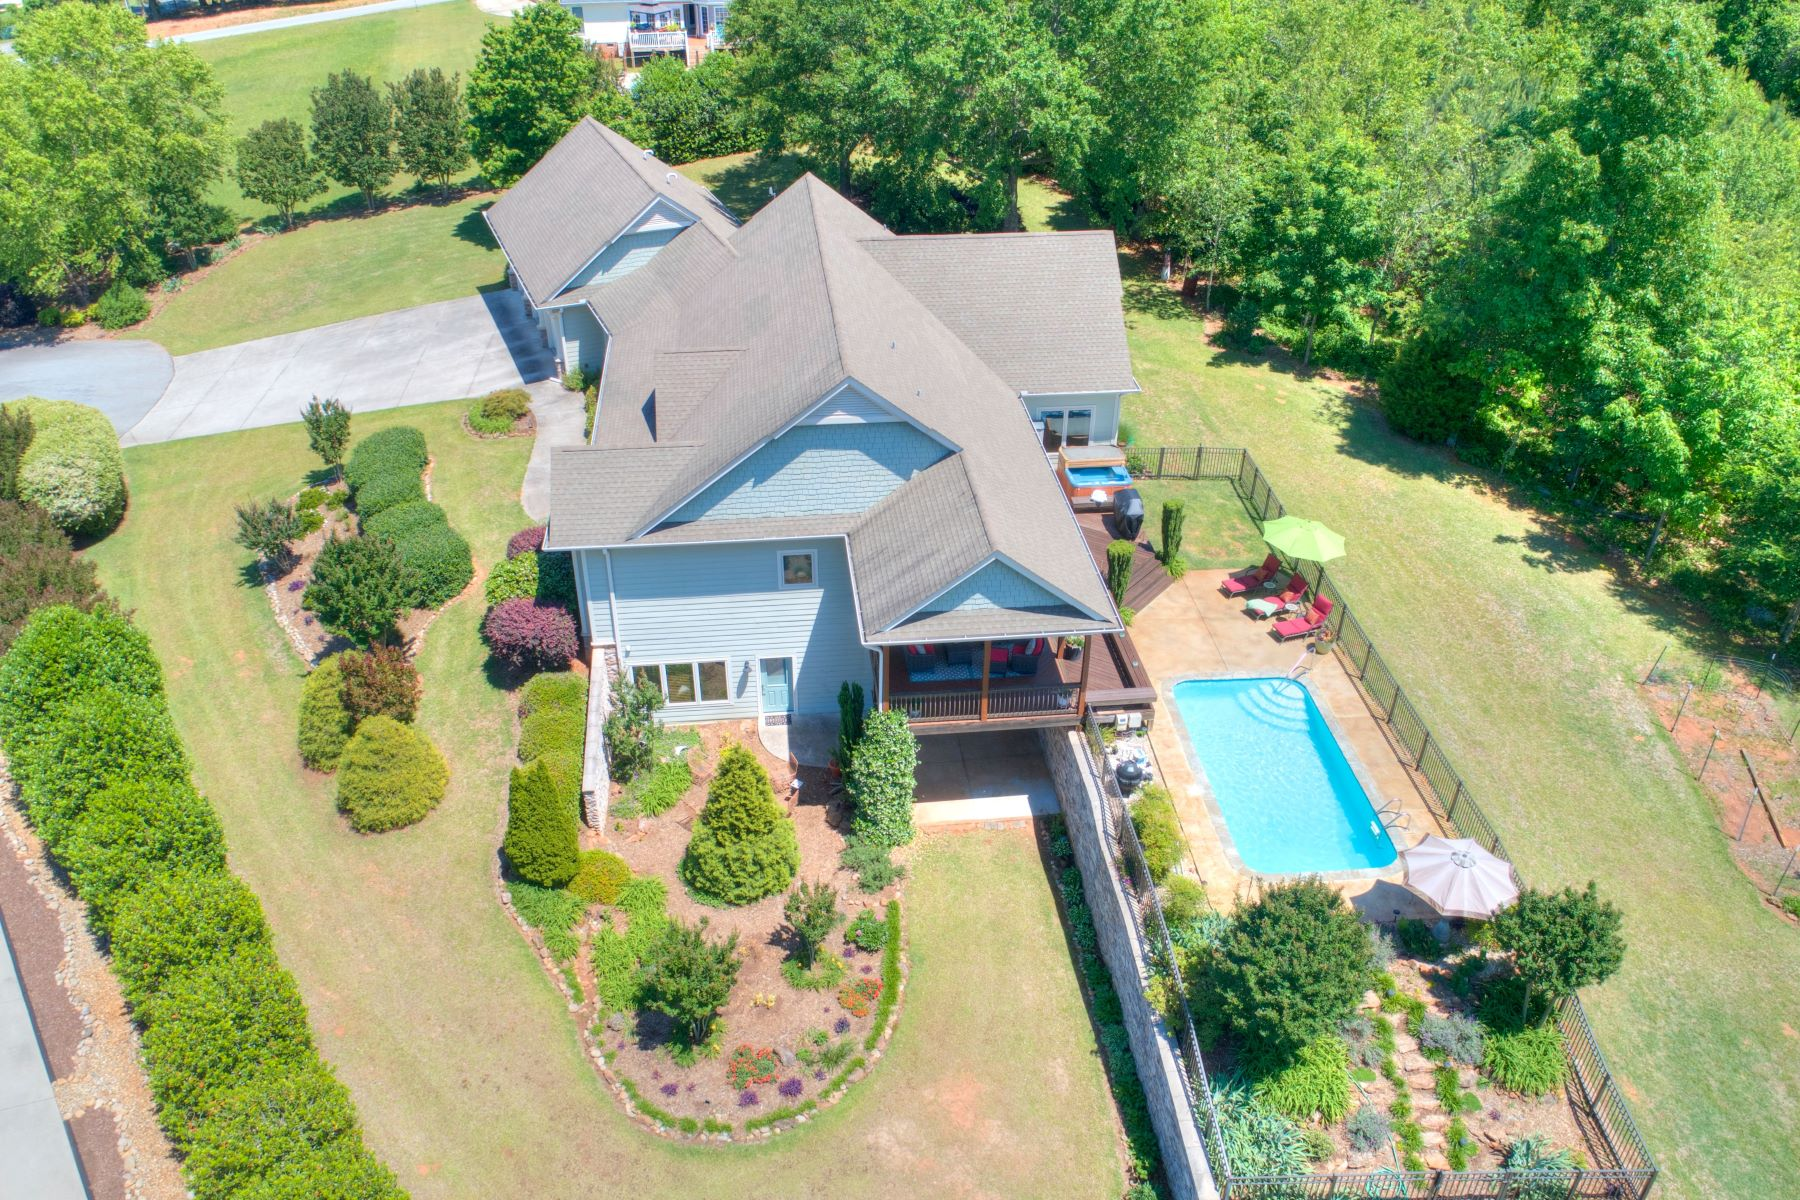 Single Family Homes for Sale at 9 Shannon Court, Anderson, SC 29626 9 Shannon Court Anderson, South Carolina 29626 United States